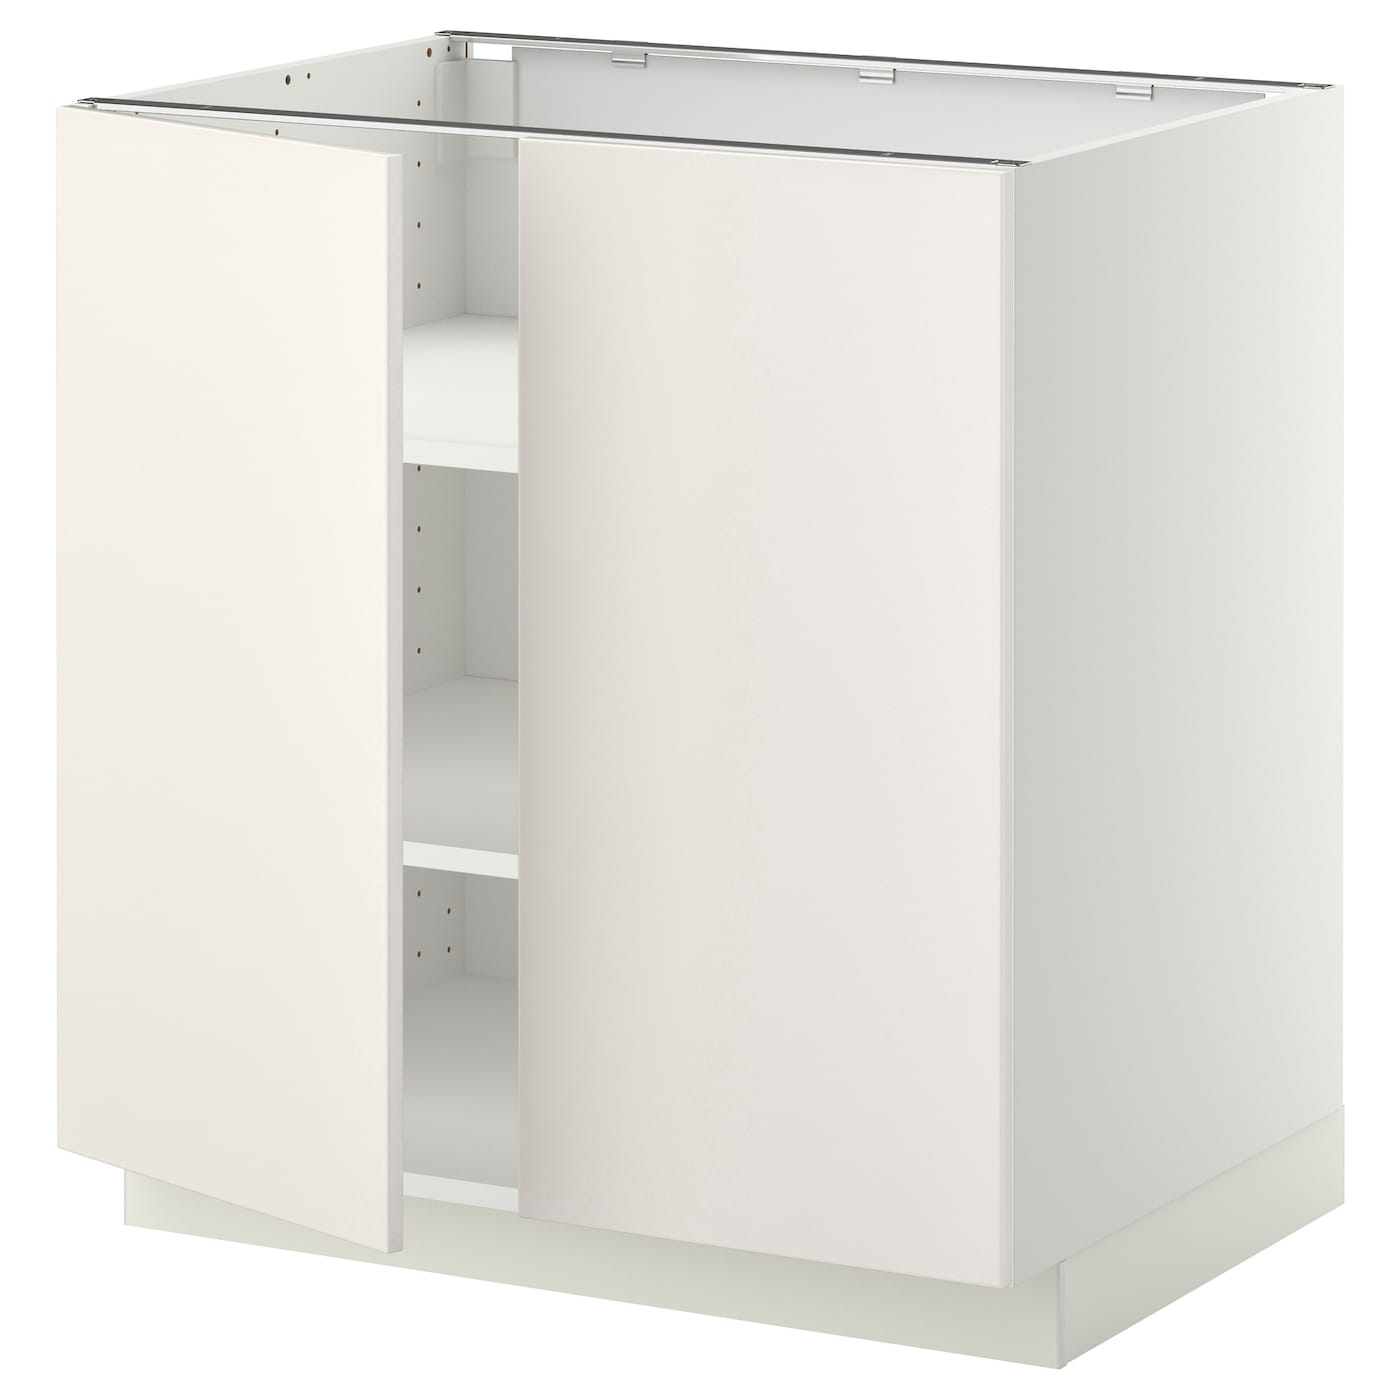 Metod Base Cabinet With Shelves2 Doors Whiteveddinge White 80 X 60